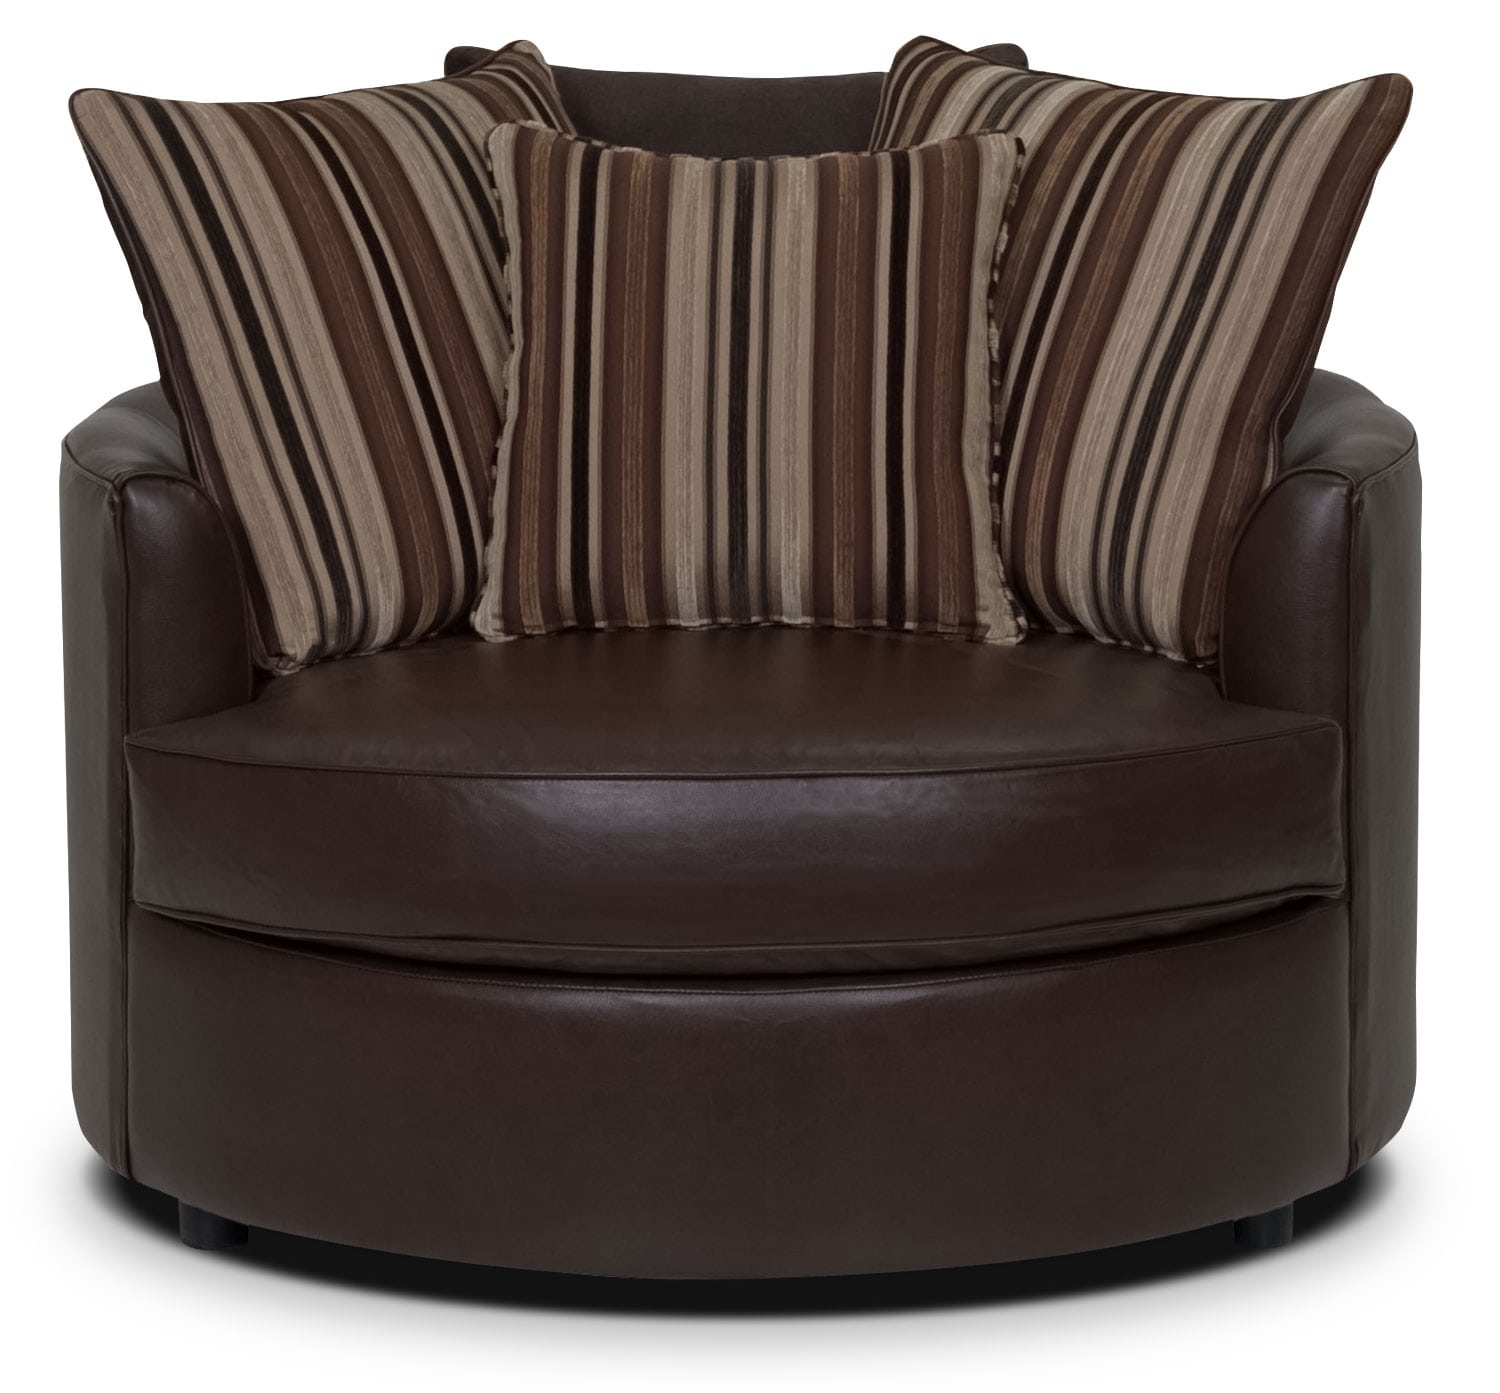 Living Room Furniture - Julia Bonded Leather Nesting Chair - Cognac